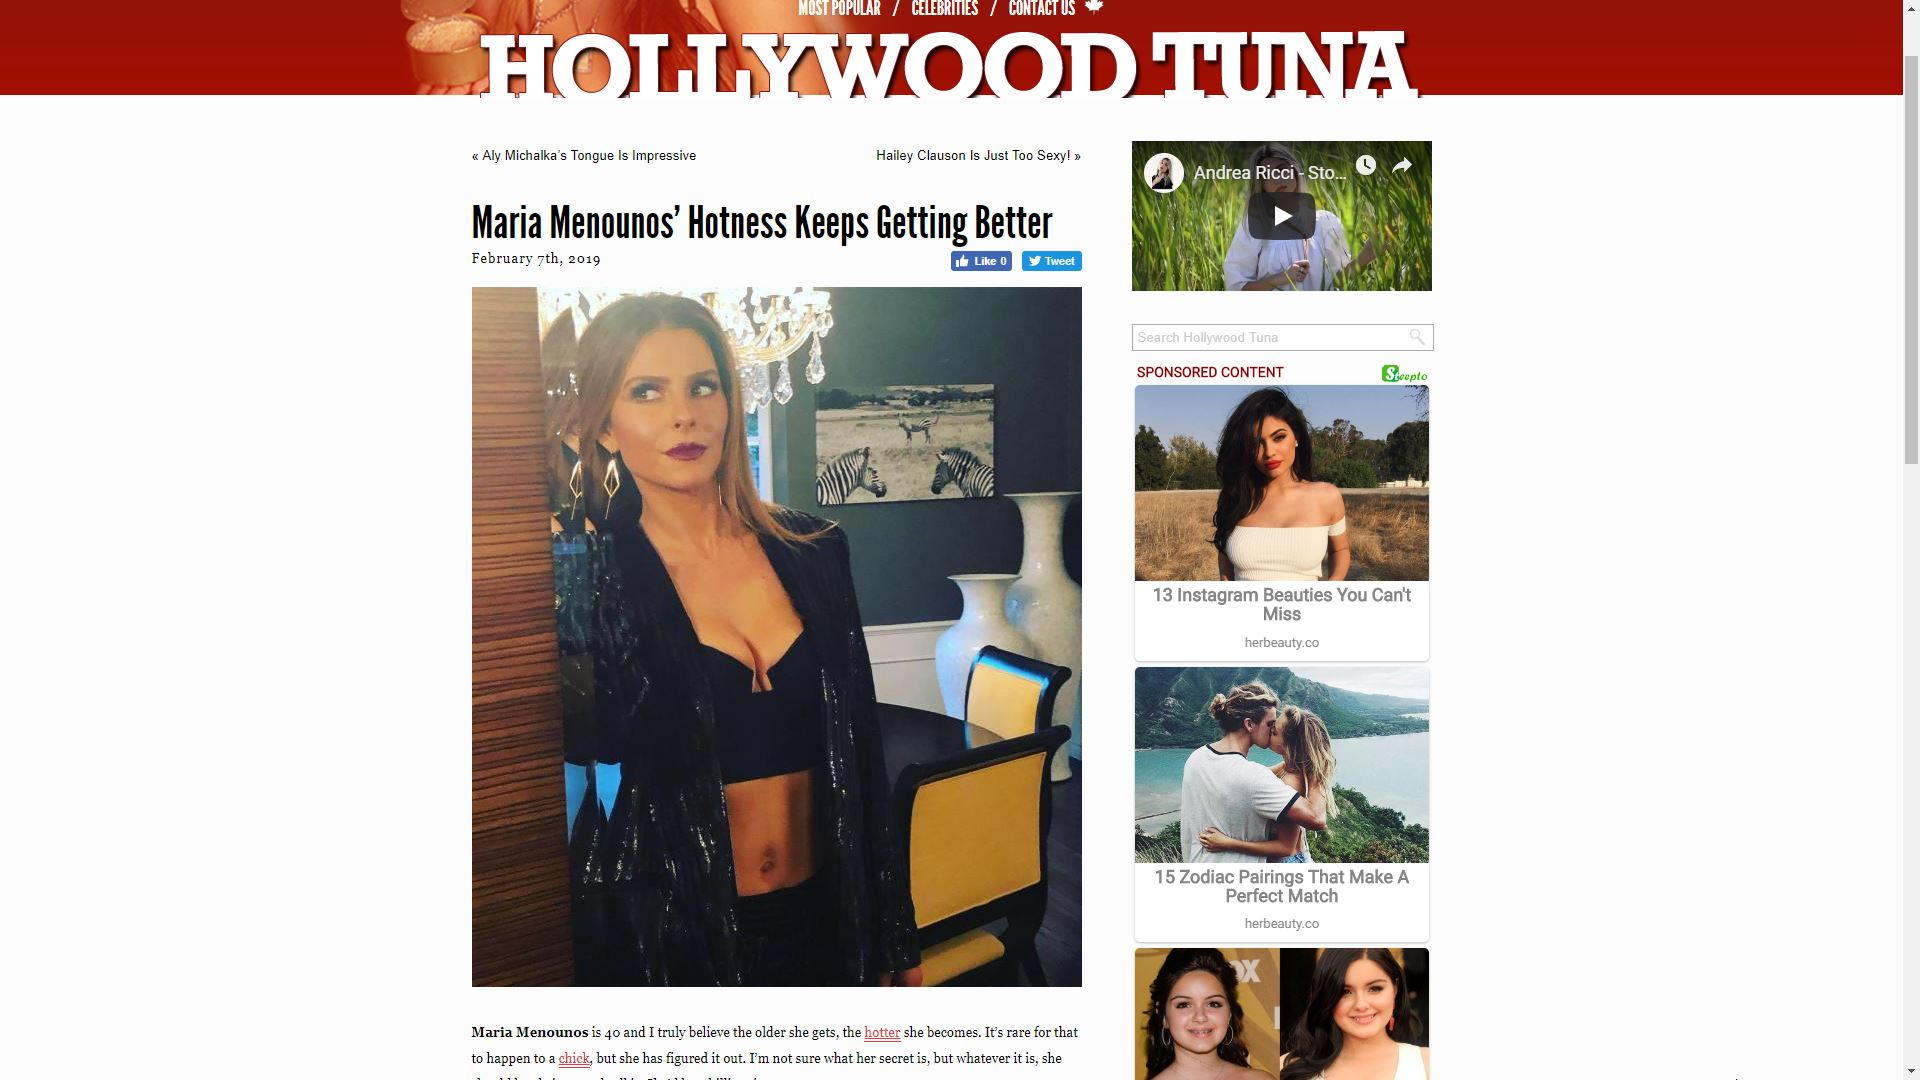 Hollywood Tuna Maria Menounos' Hotness Keeps Getting Better